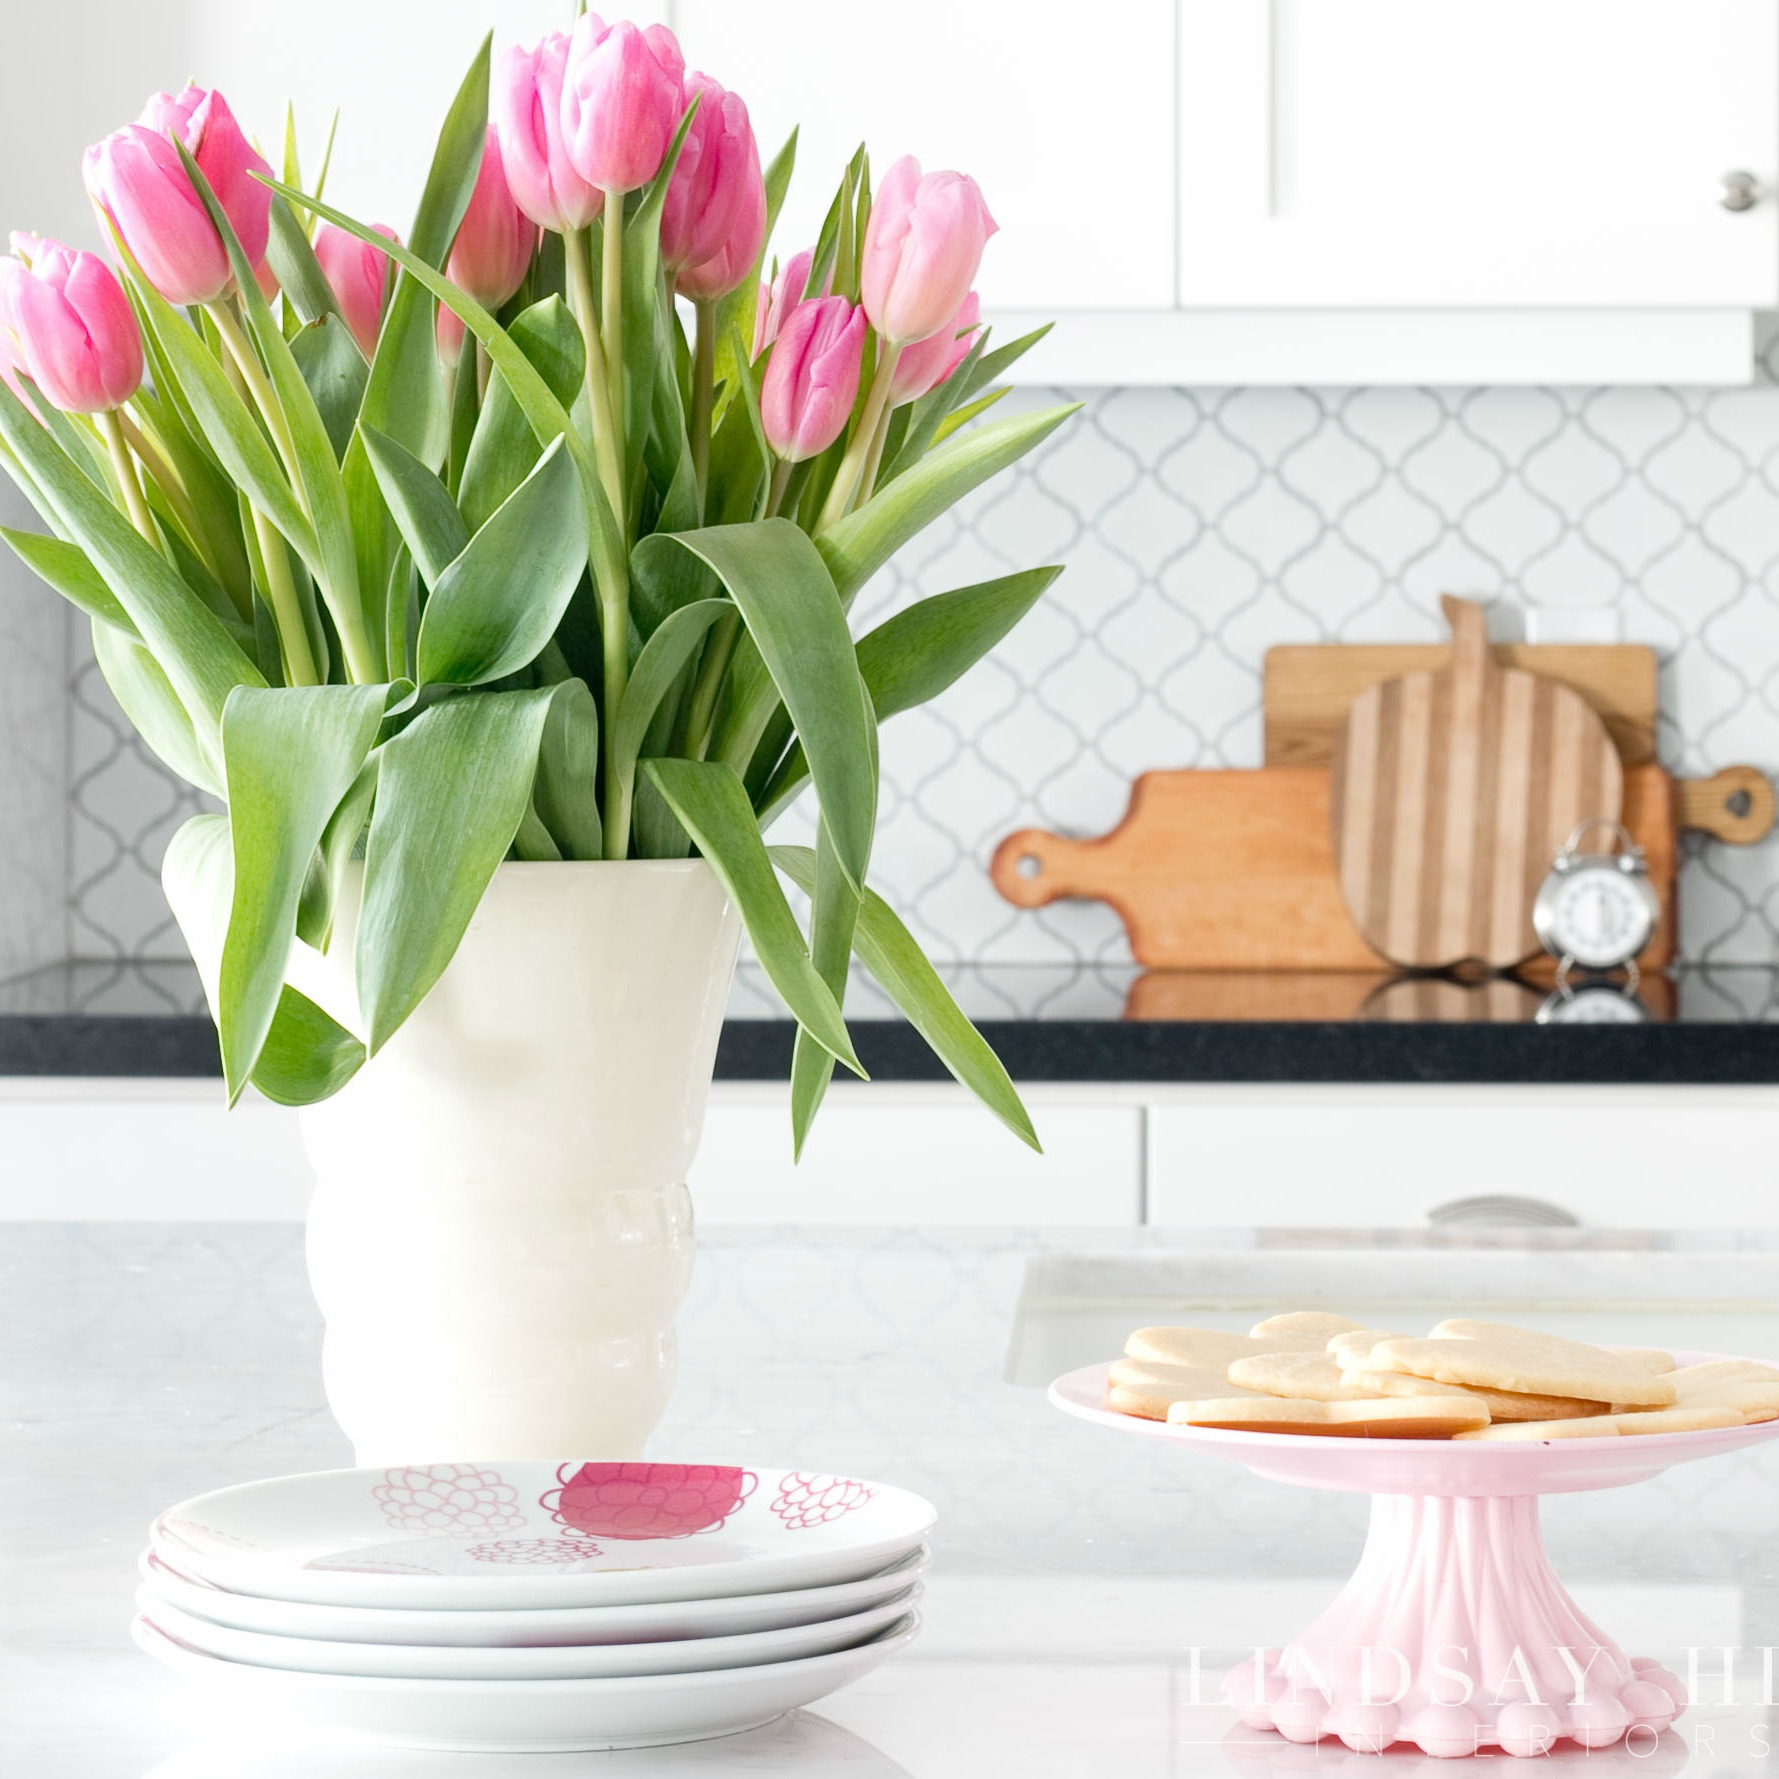 lindsay hill interiors simple valentine's day decor